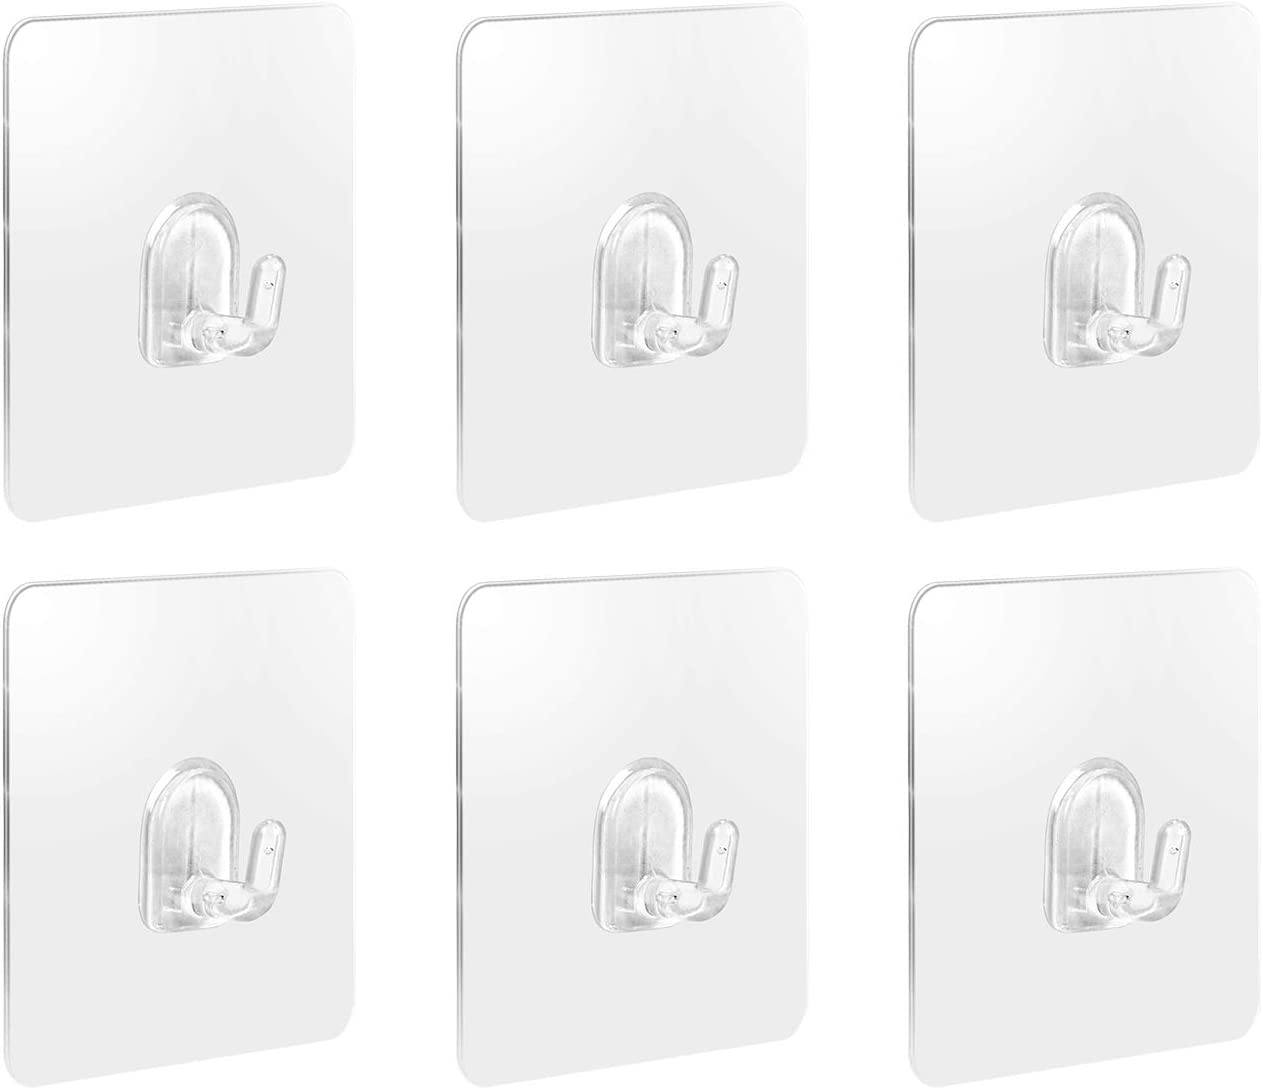 Wall Hook Plastic Non-Marking - Direct sale of manufacturer Charlotte Mall Kitc for Kitchen Hooks